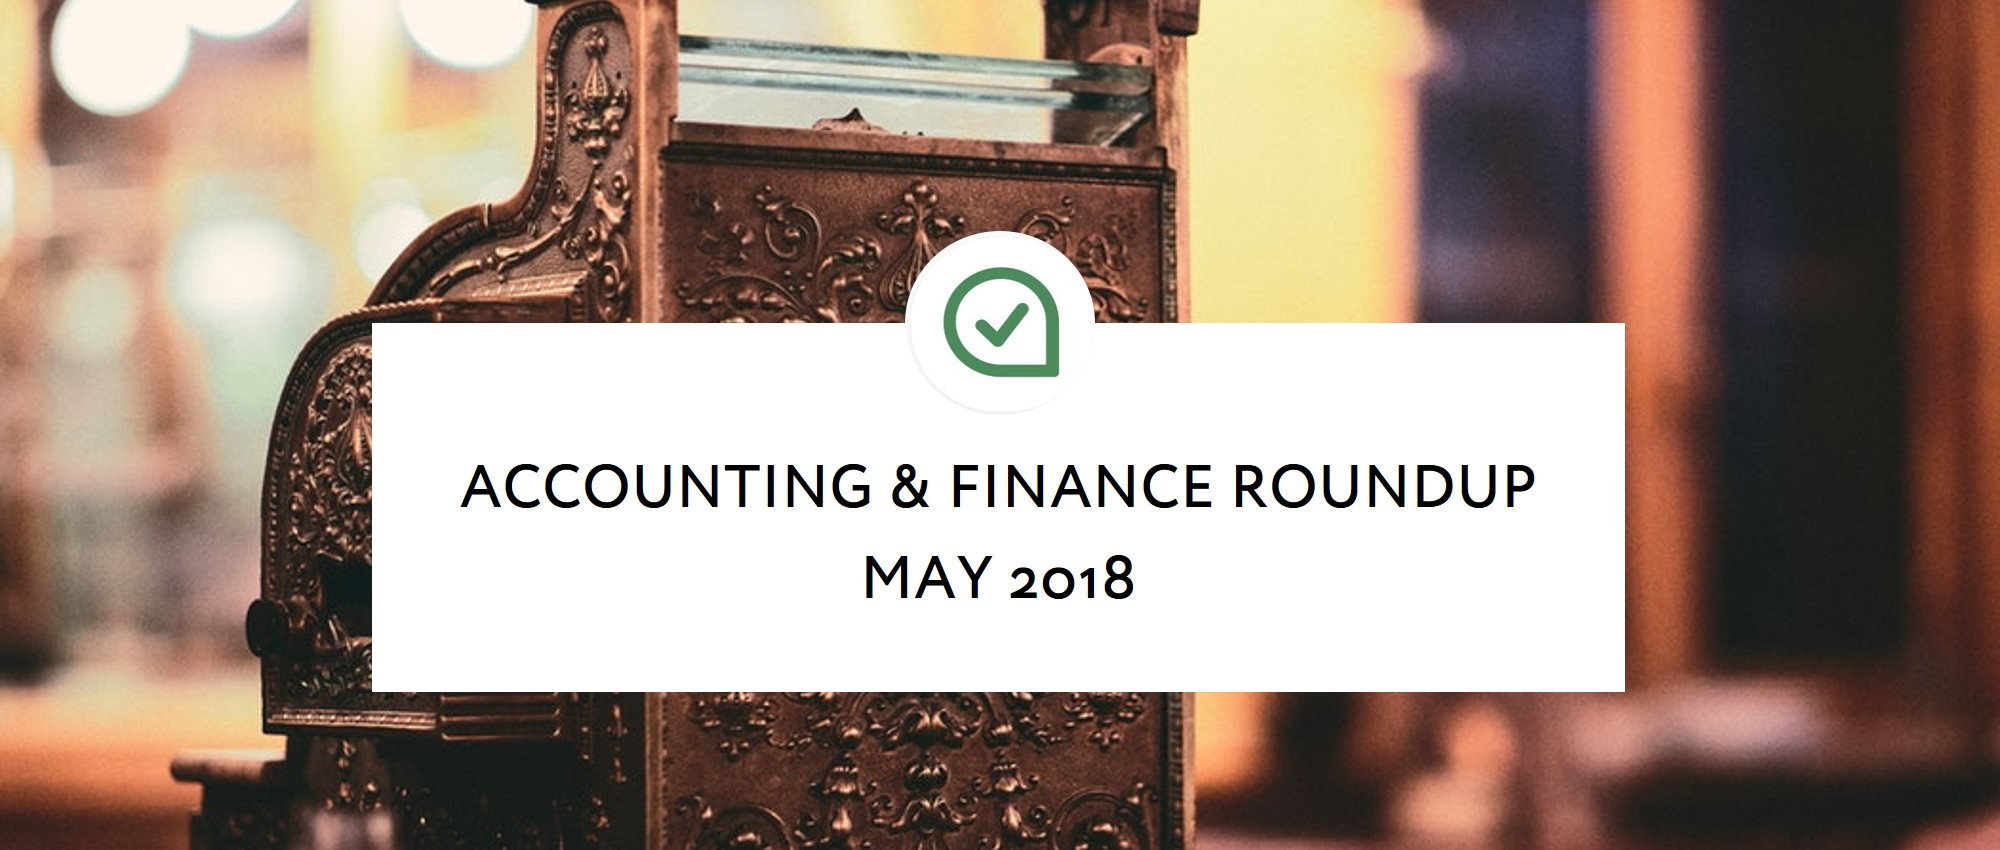 ApprovalMax Accounting and Finance Roundup May 2018